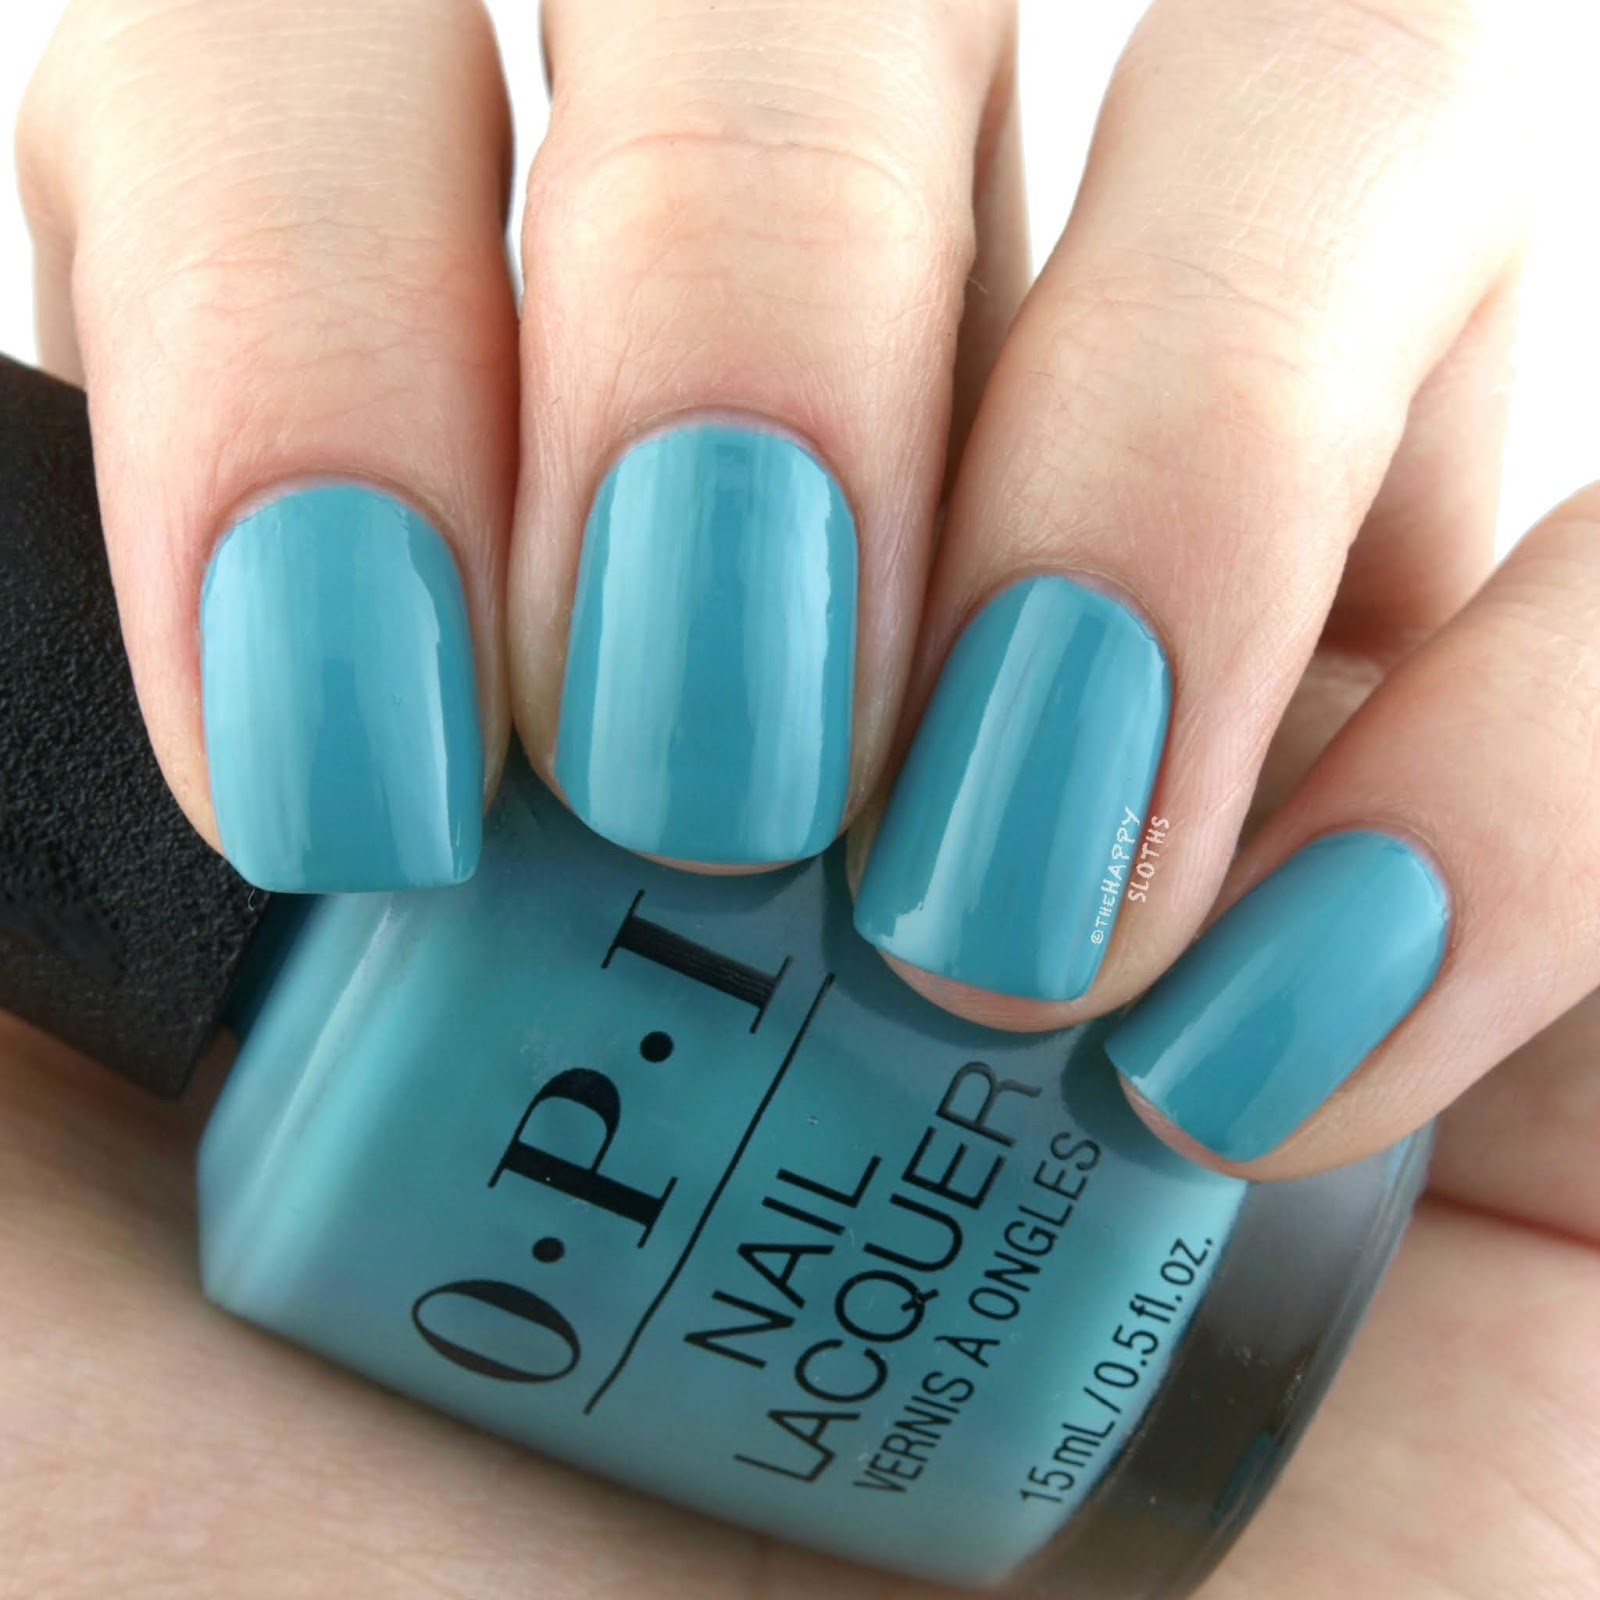 OPI Spring 2019 Tokyo Collection | Suzi-san Climbs Fuji-san: Review and Swatches